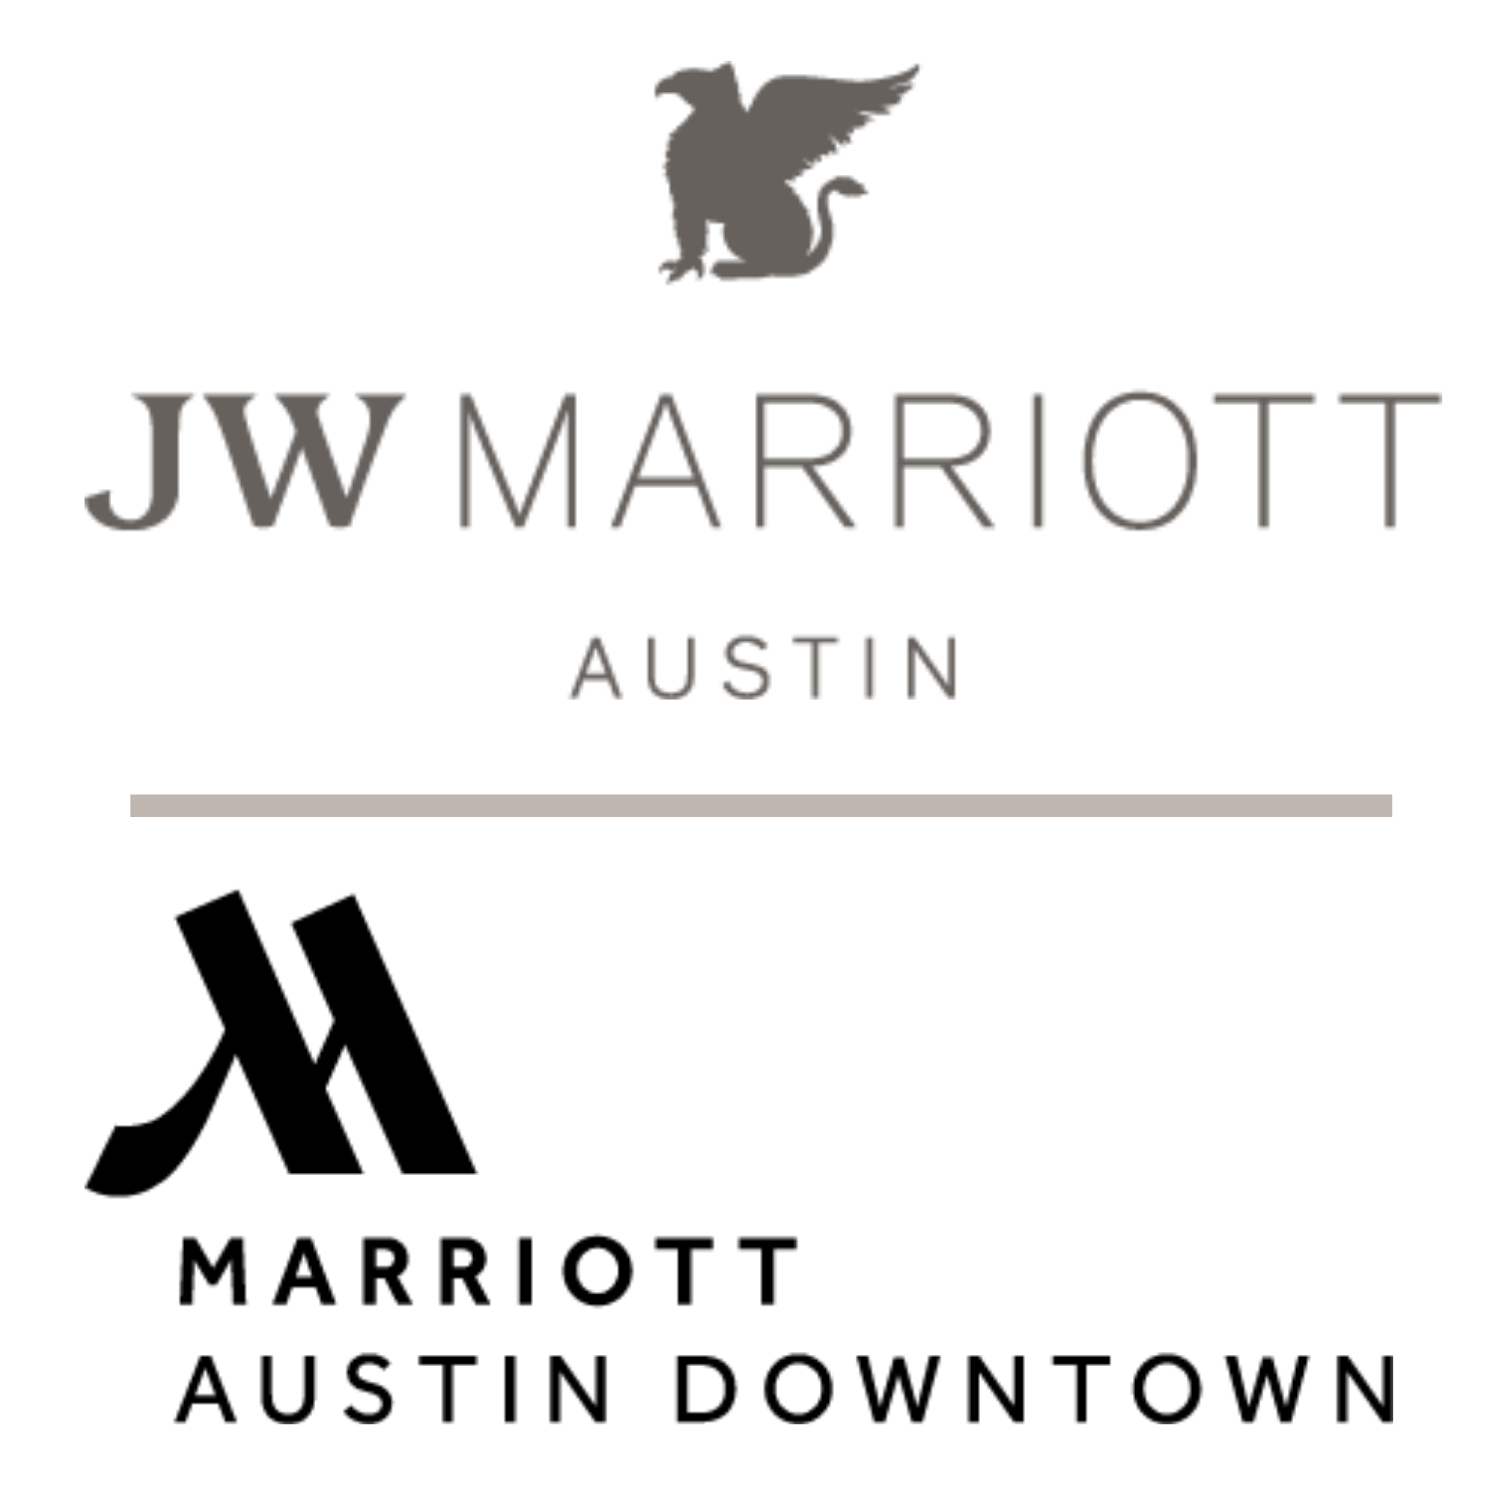 JW Marriott Austin & Marriott Austin Downtown